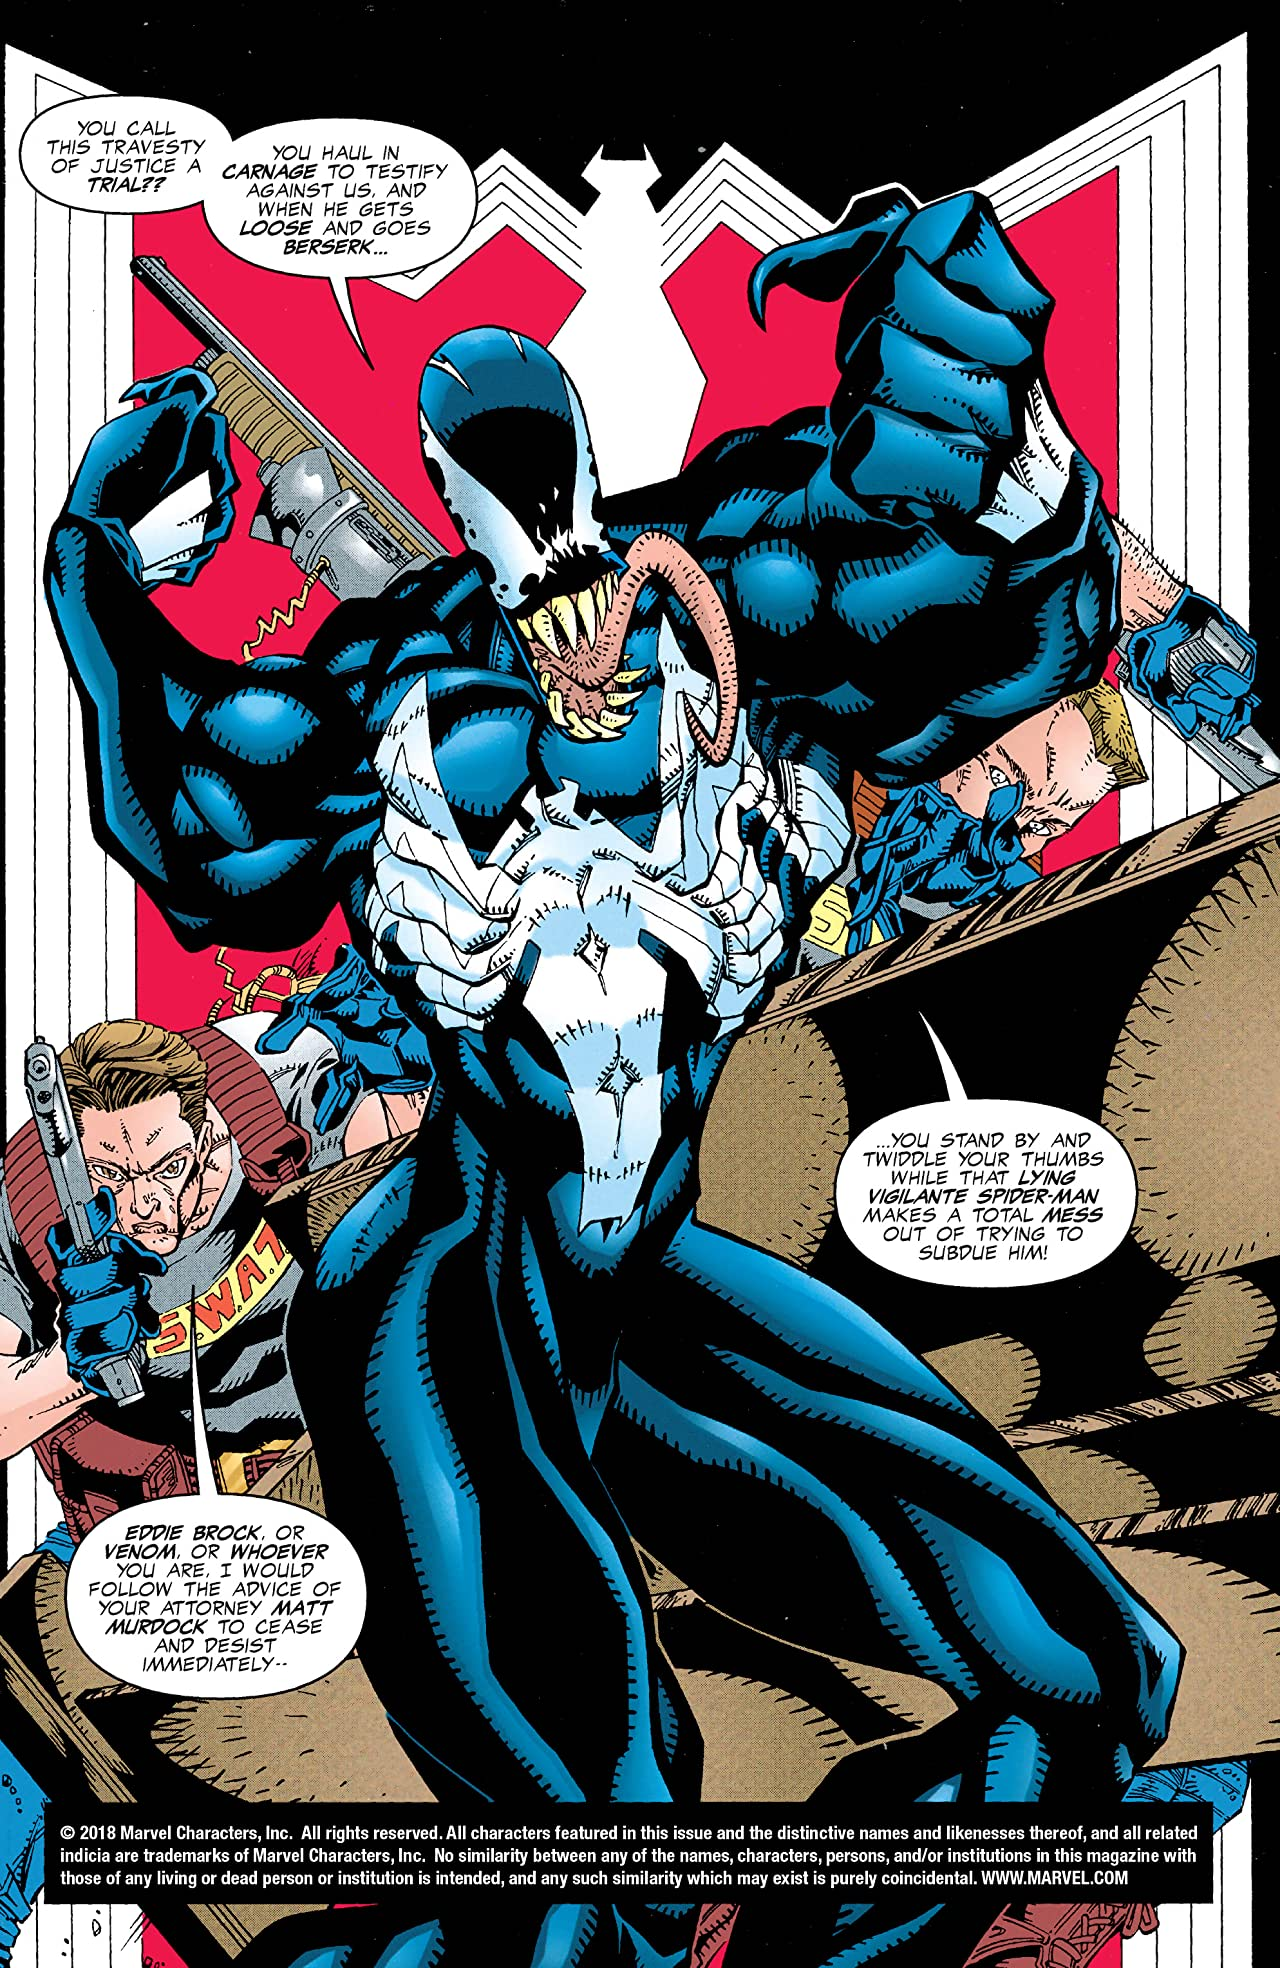 Venom: On Trial (1997) #3